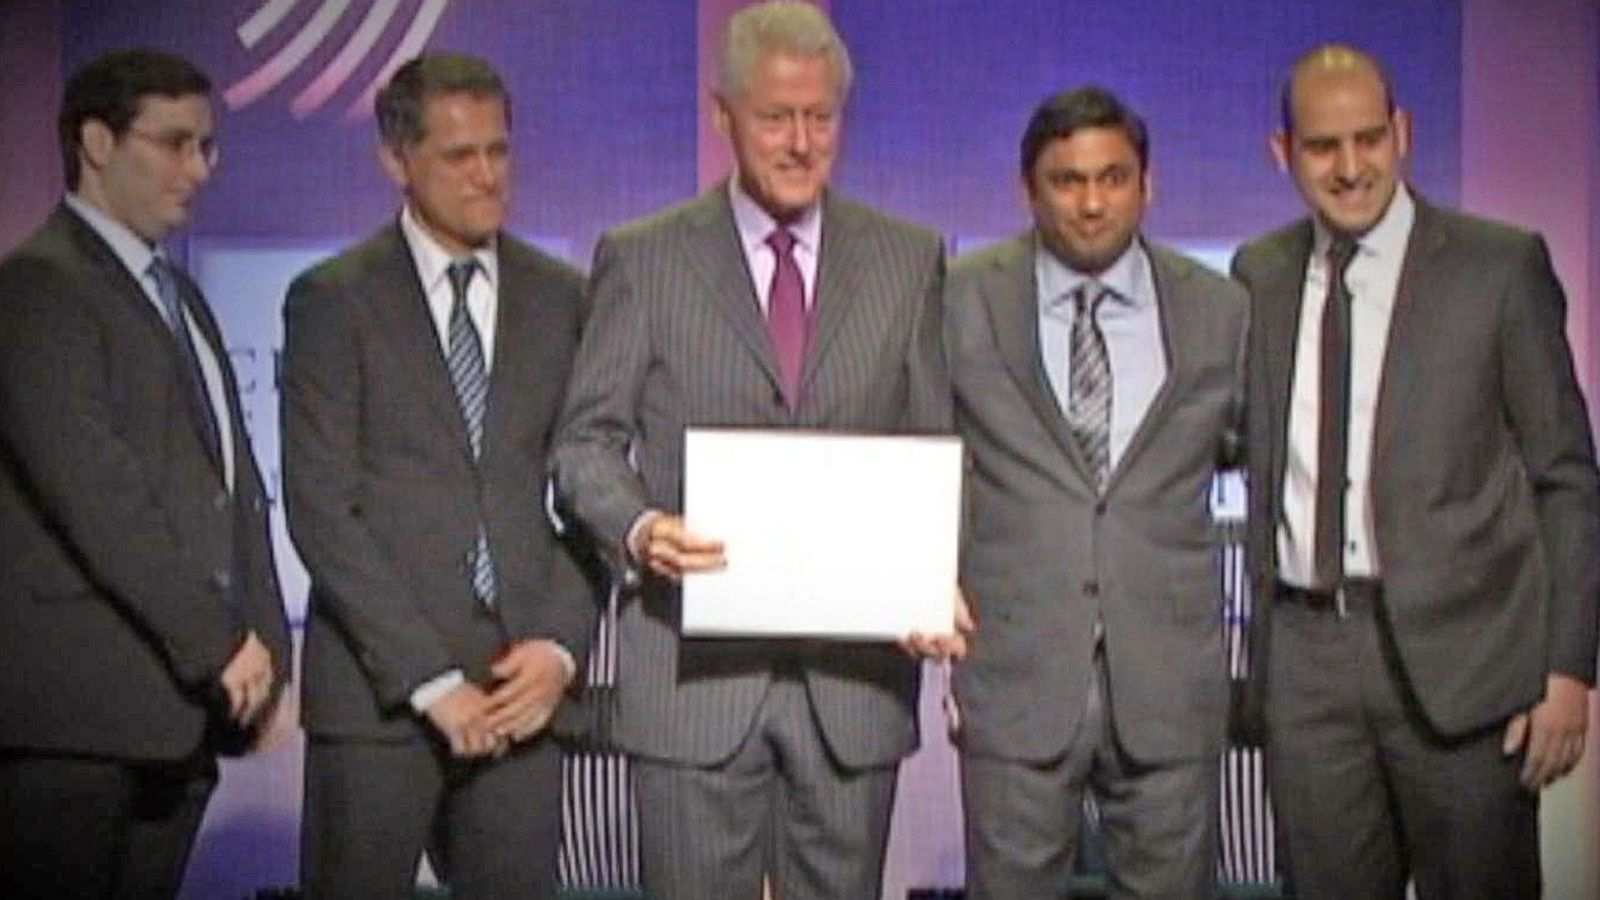 VIDEO: New Questions About Clinton Foundation